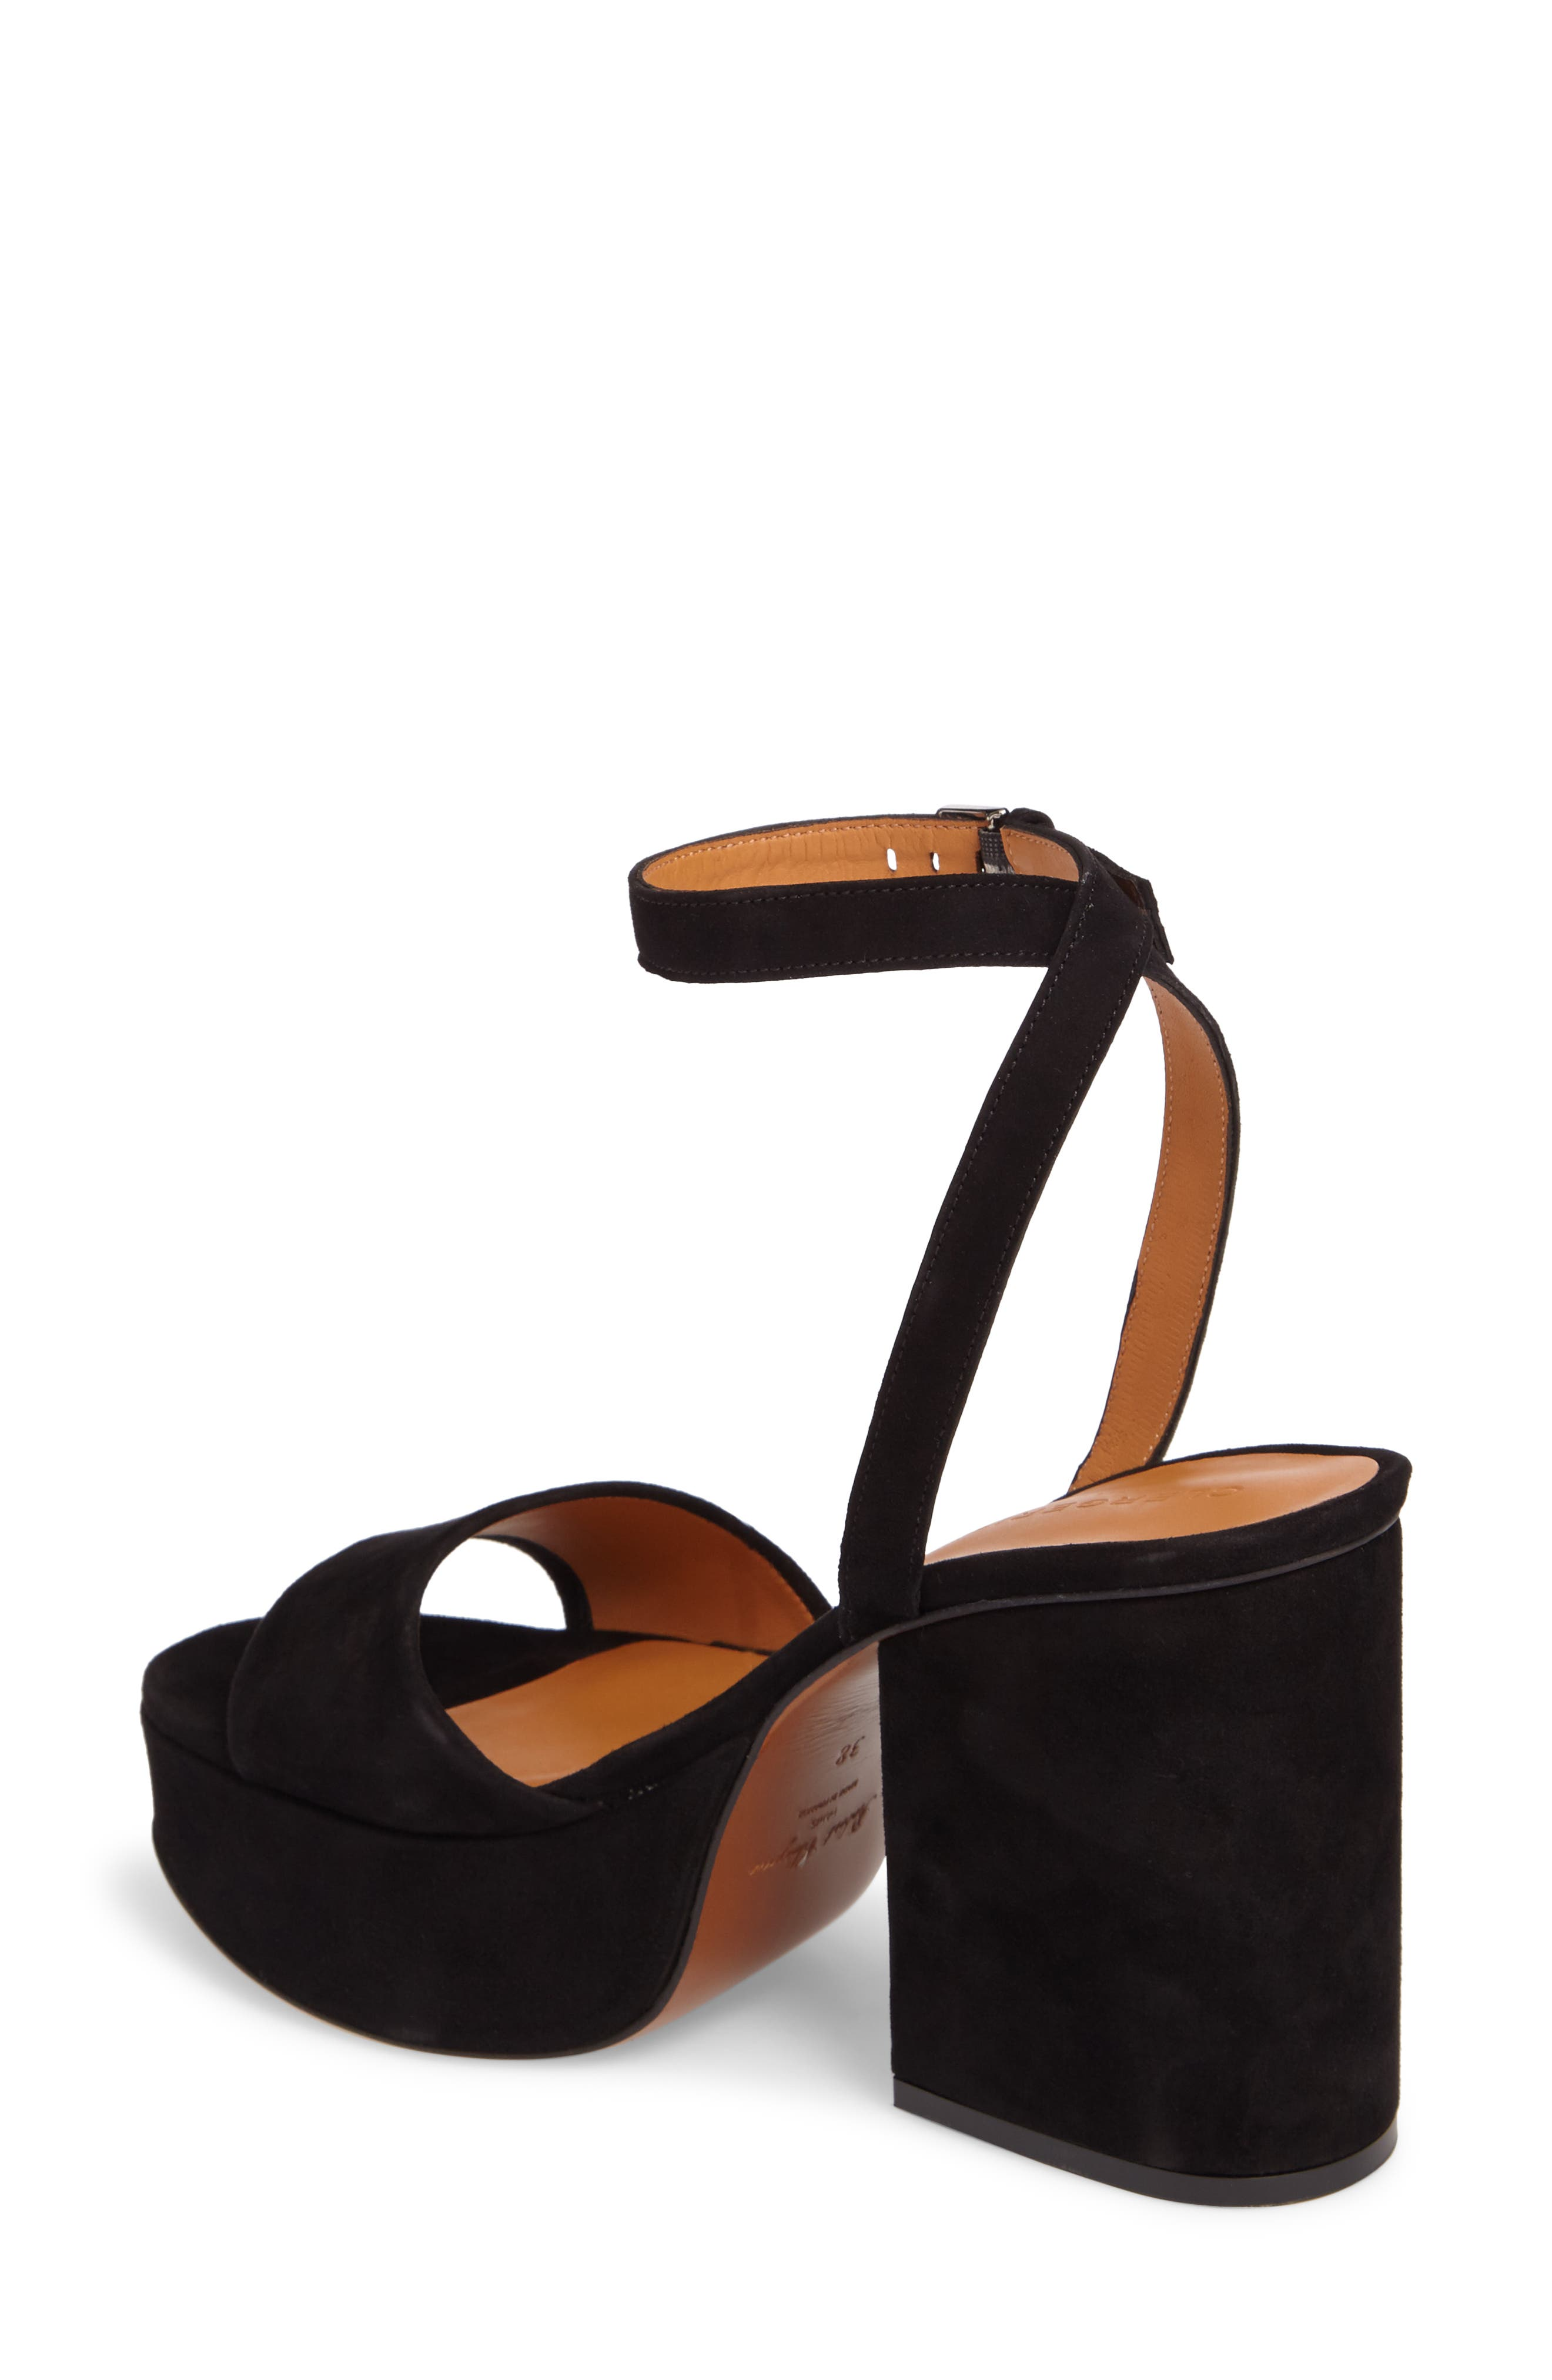 Vionica Platform Ankle Strap Sandal,                             Alternate thumbnail 2, color,                             Black